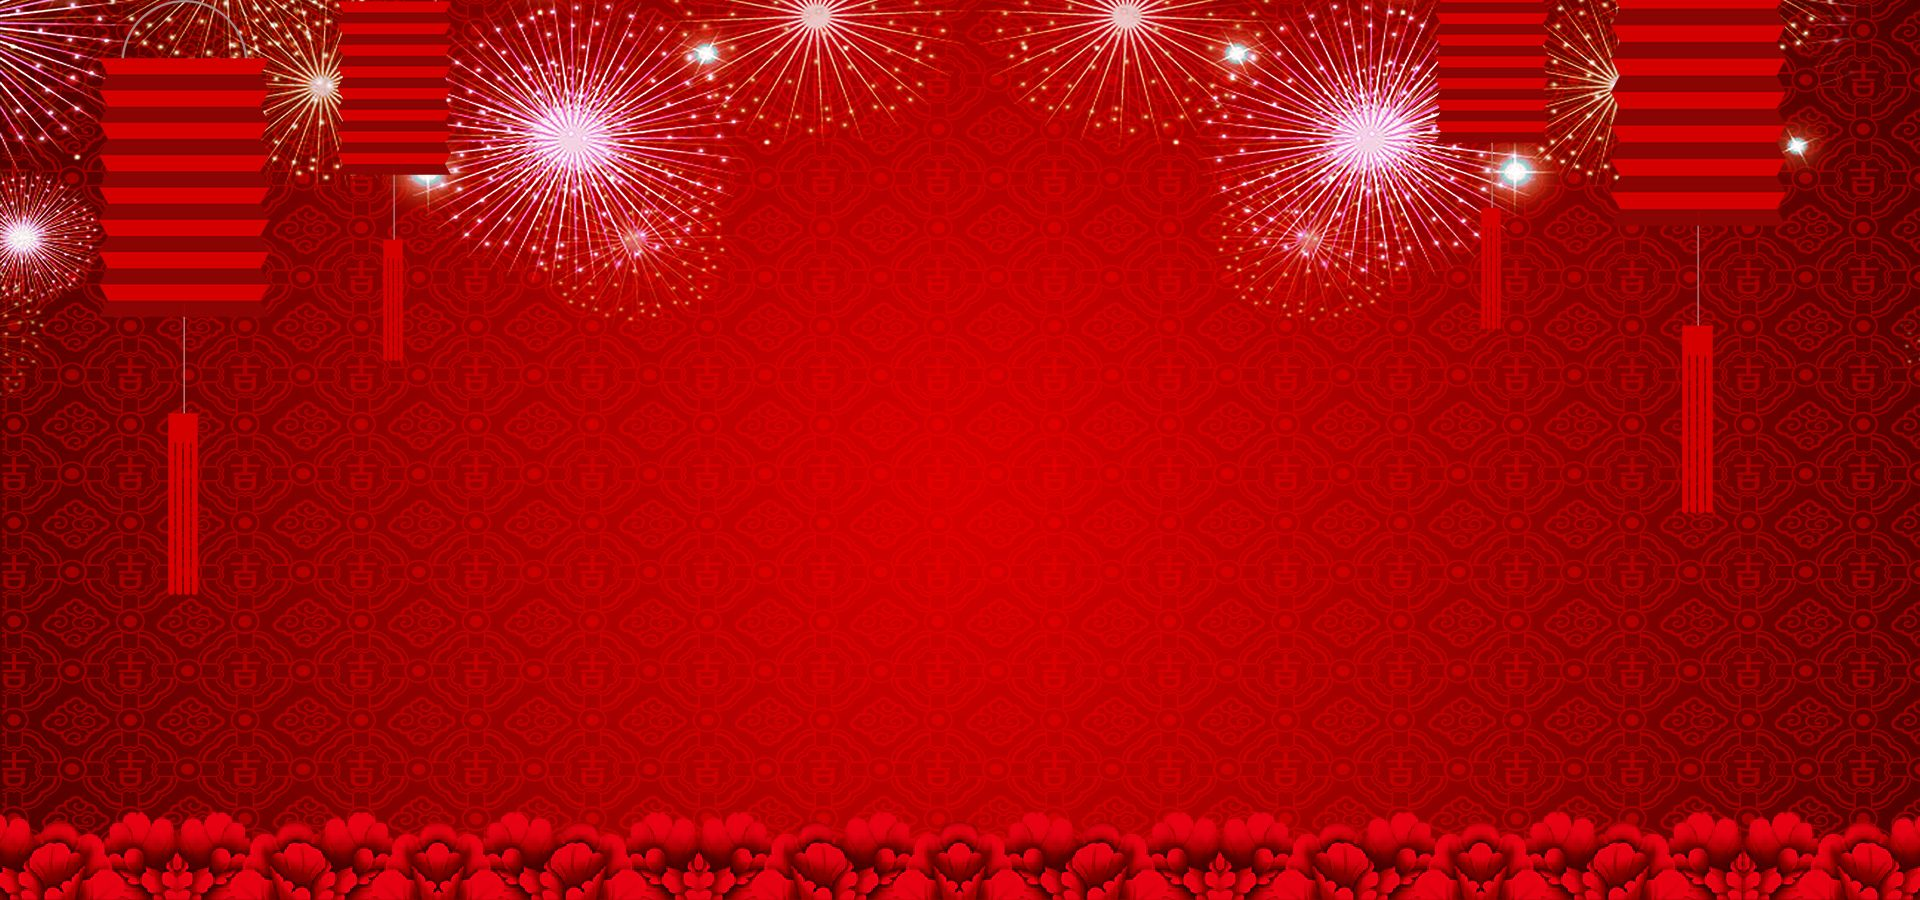 red lanterns chinese new year style poster background